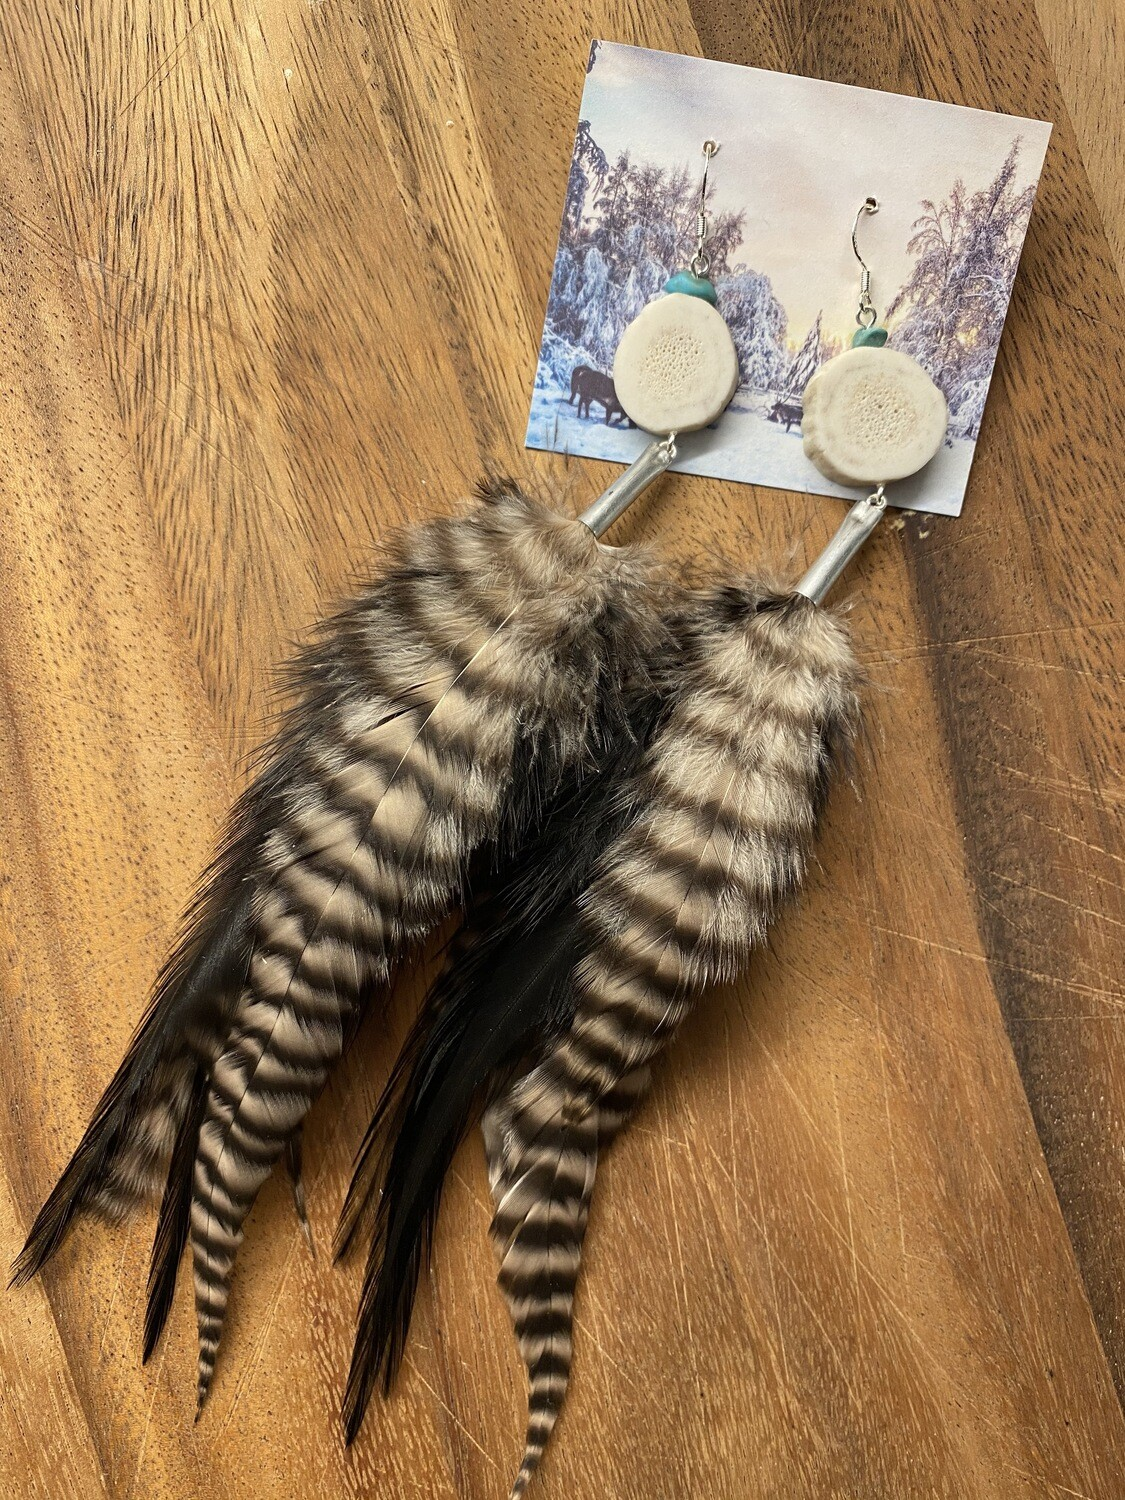 Ursa Minor Antler and Feather Earrings